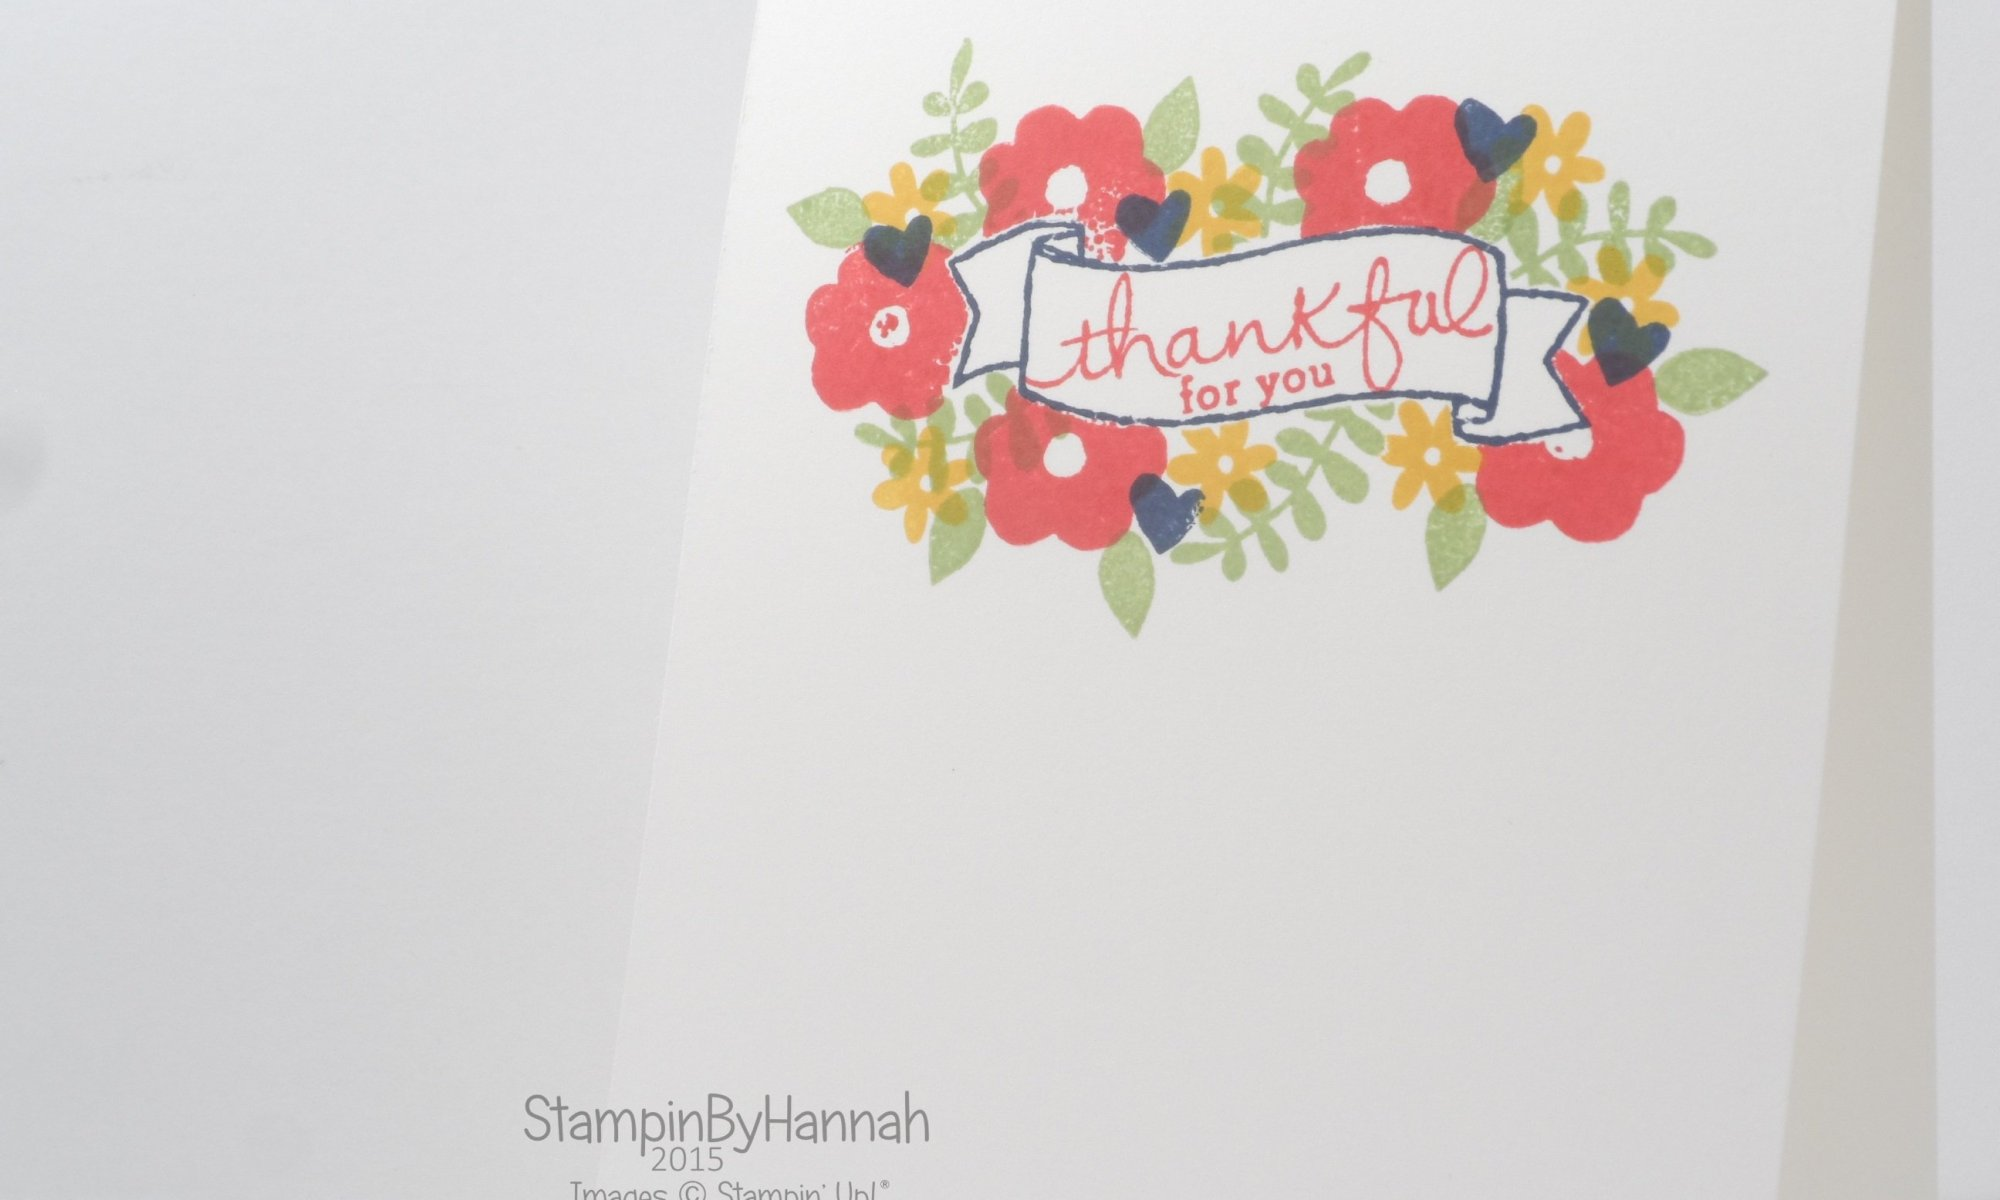 Stampin' Up! UK Endless Thanks Masking card making